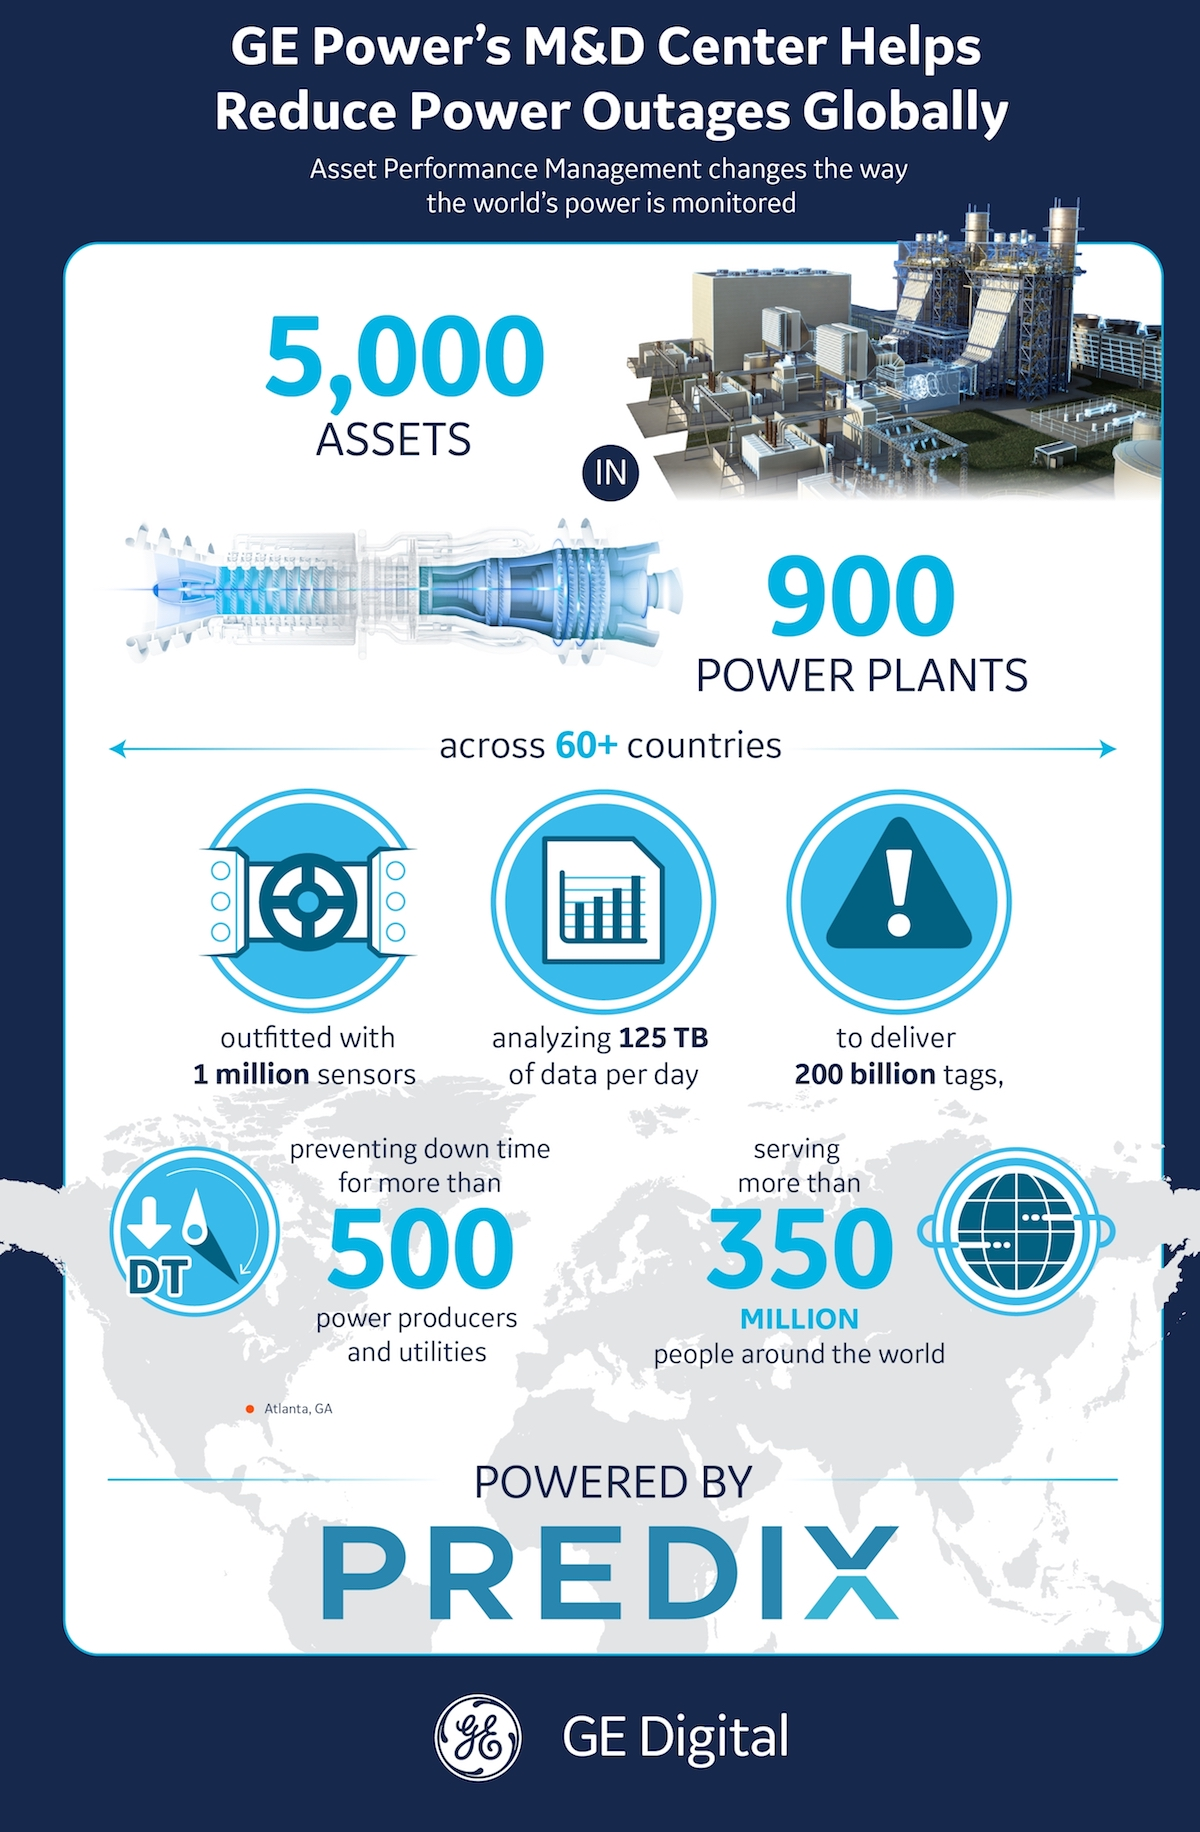 GE: Reducing Power Outages Worldwide with Large-Scale